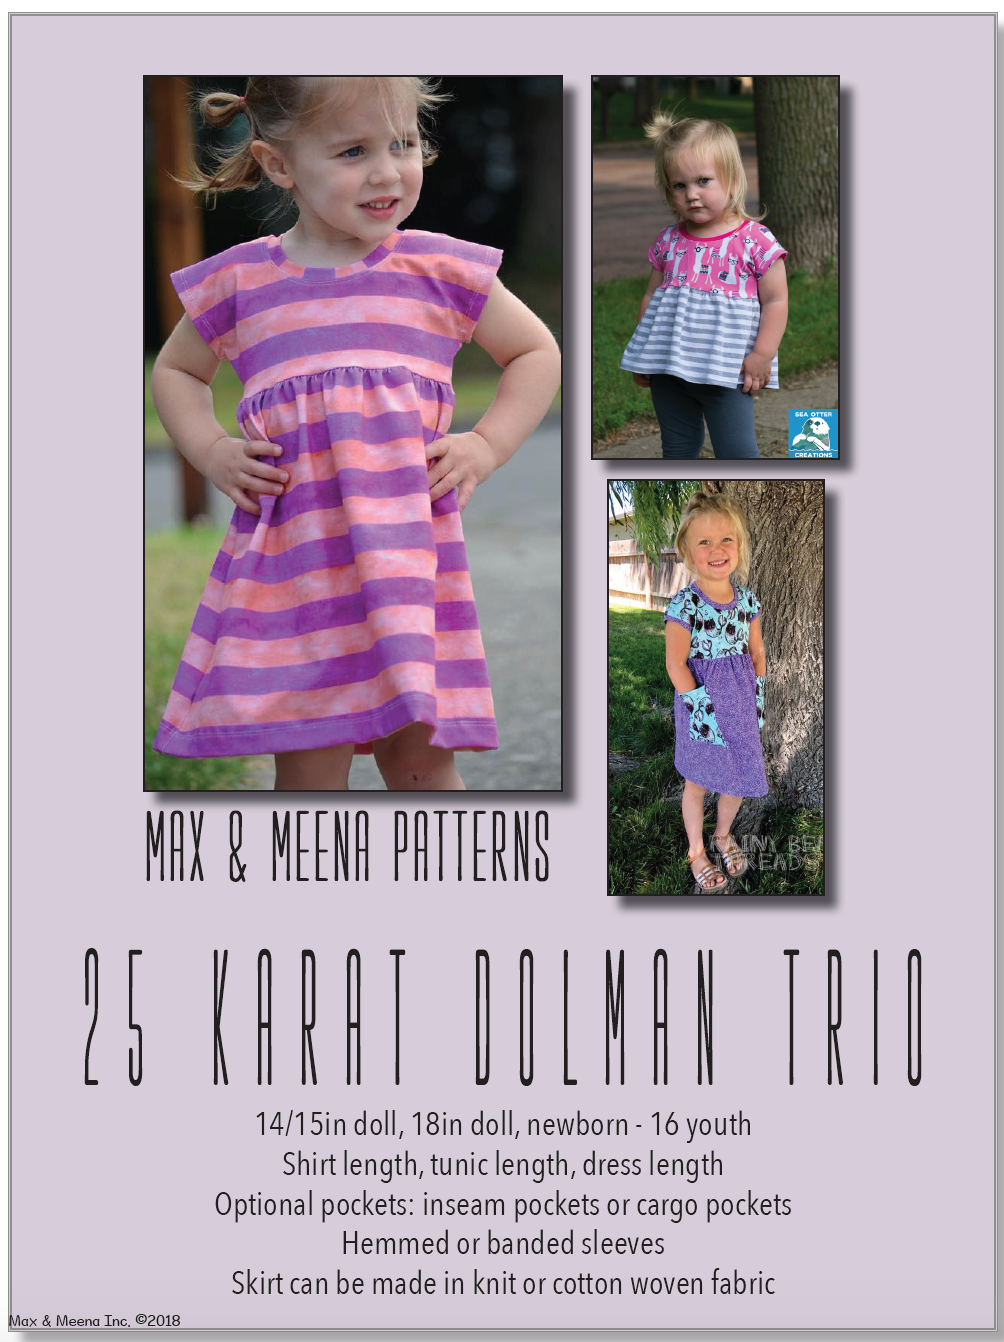 25 Karat Dolman Trio SEWING PDF PATTERN